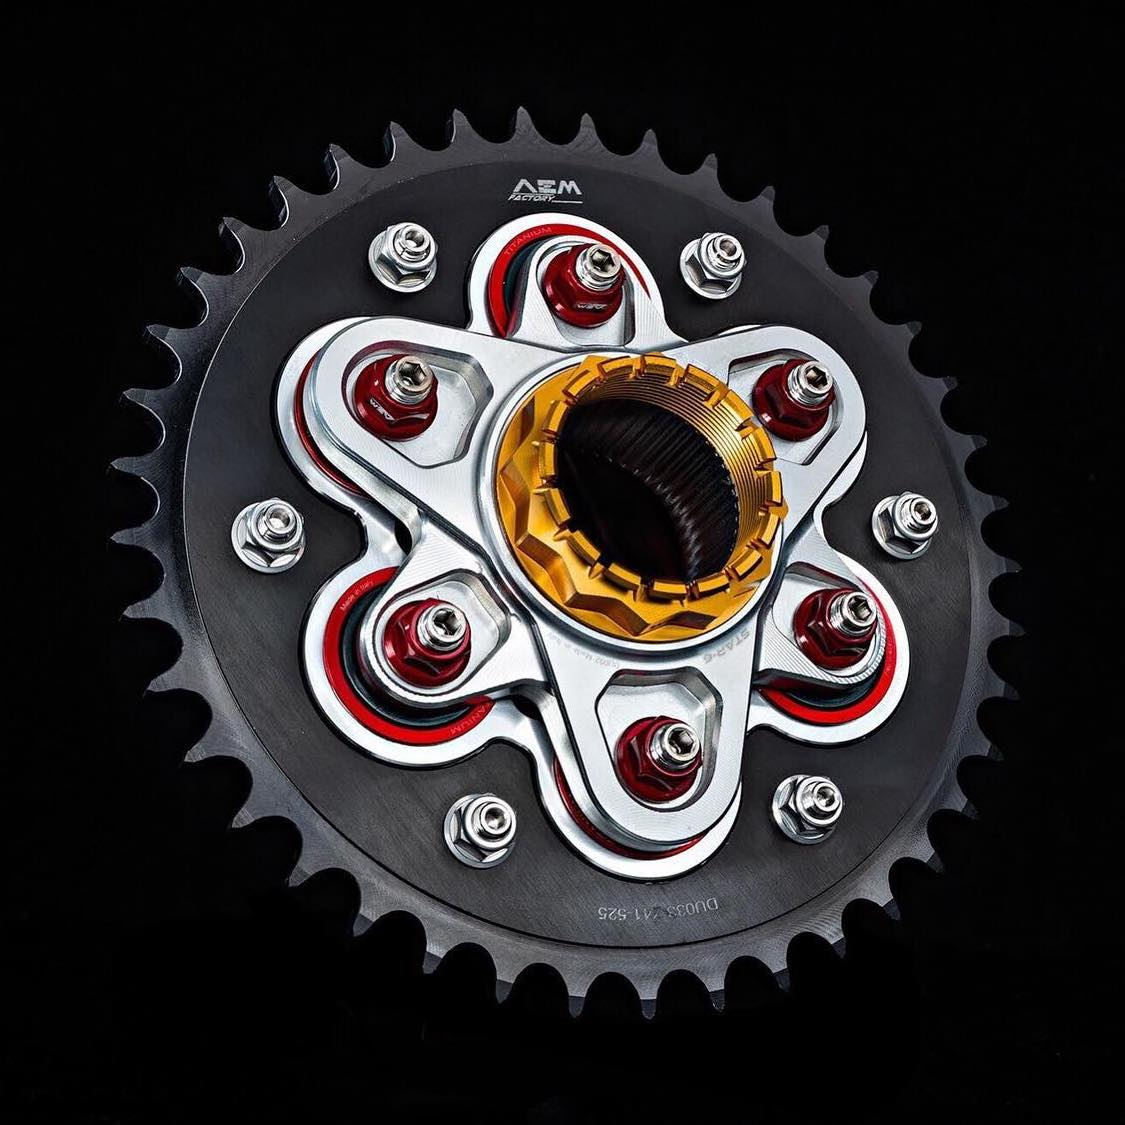 AEM Factory Ducati Sprocket Carrier Flange 'Star-6'